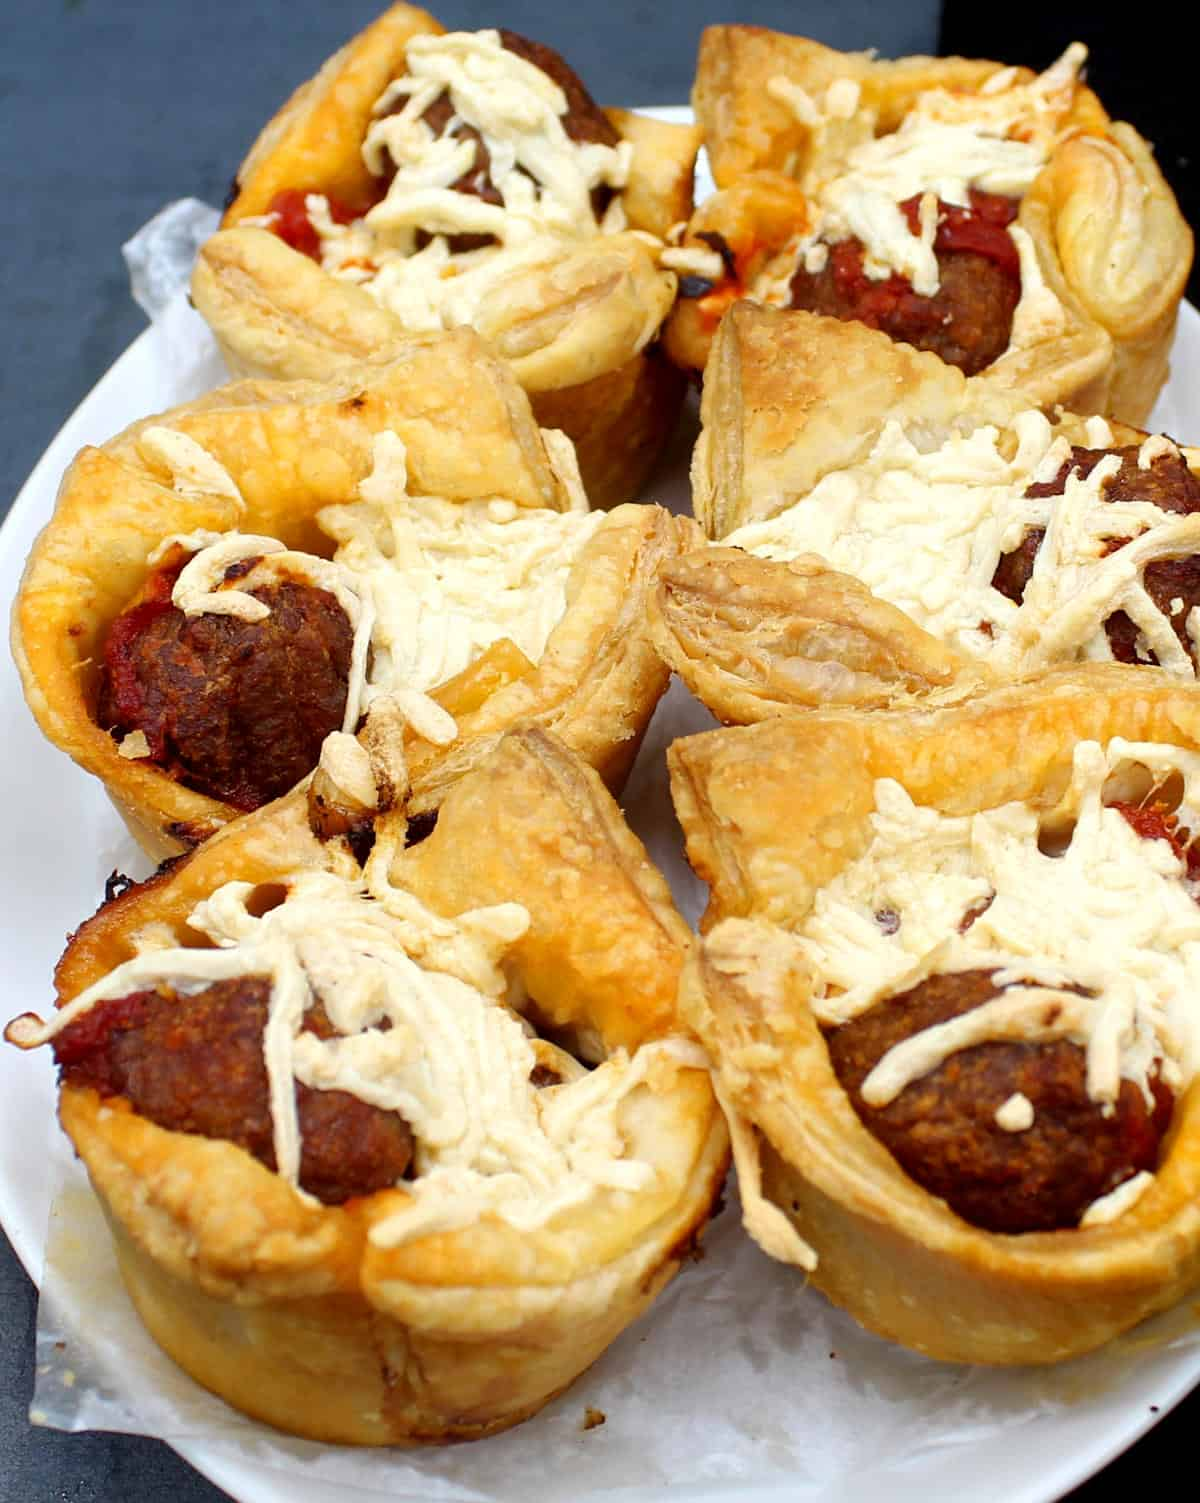 Photo of six vegan puff pastry cups with marinara meatballs and cheese.